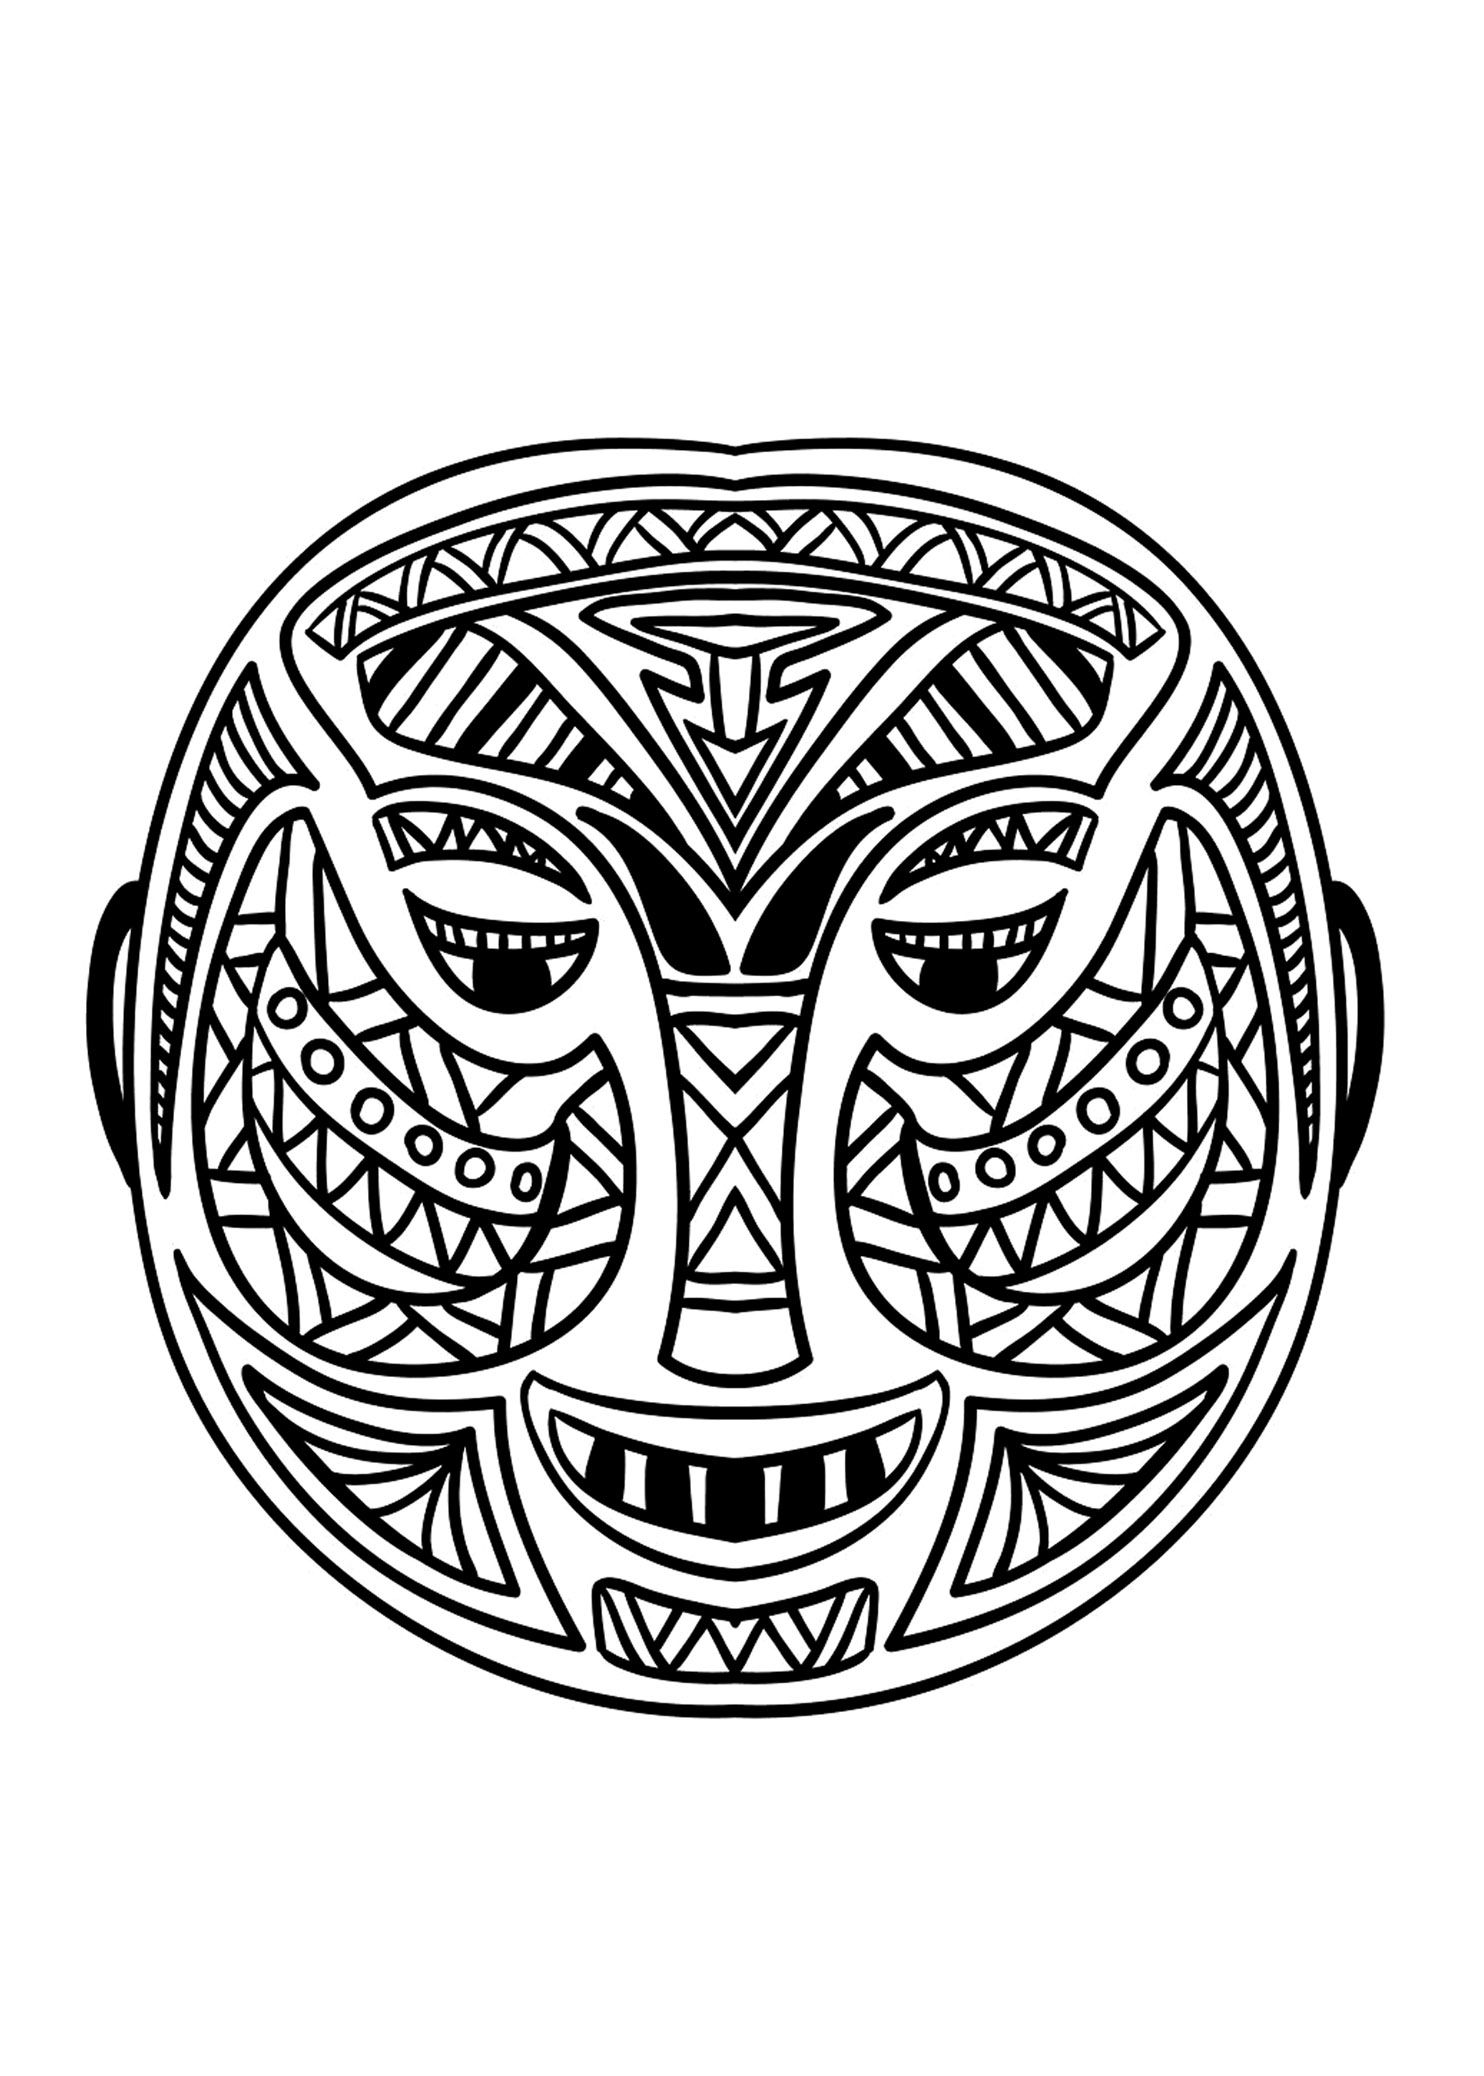 Coloring picture of an African mask 5 From the gallery Africa